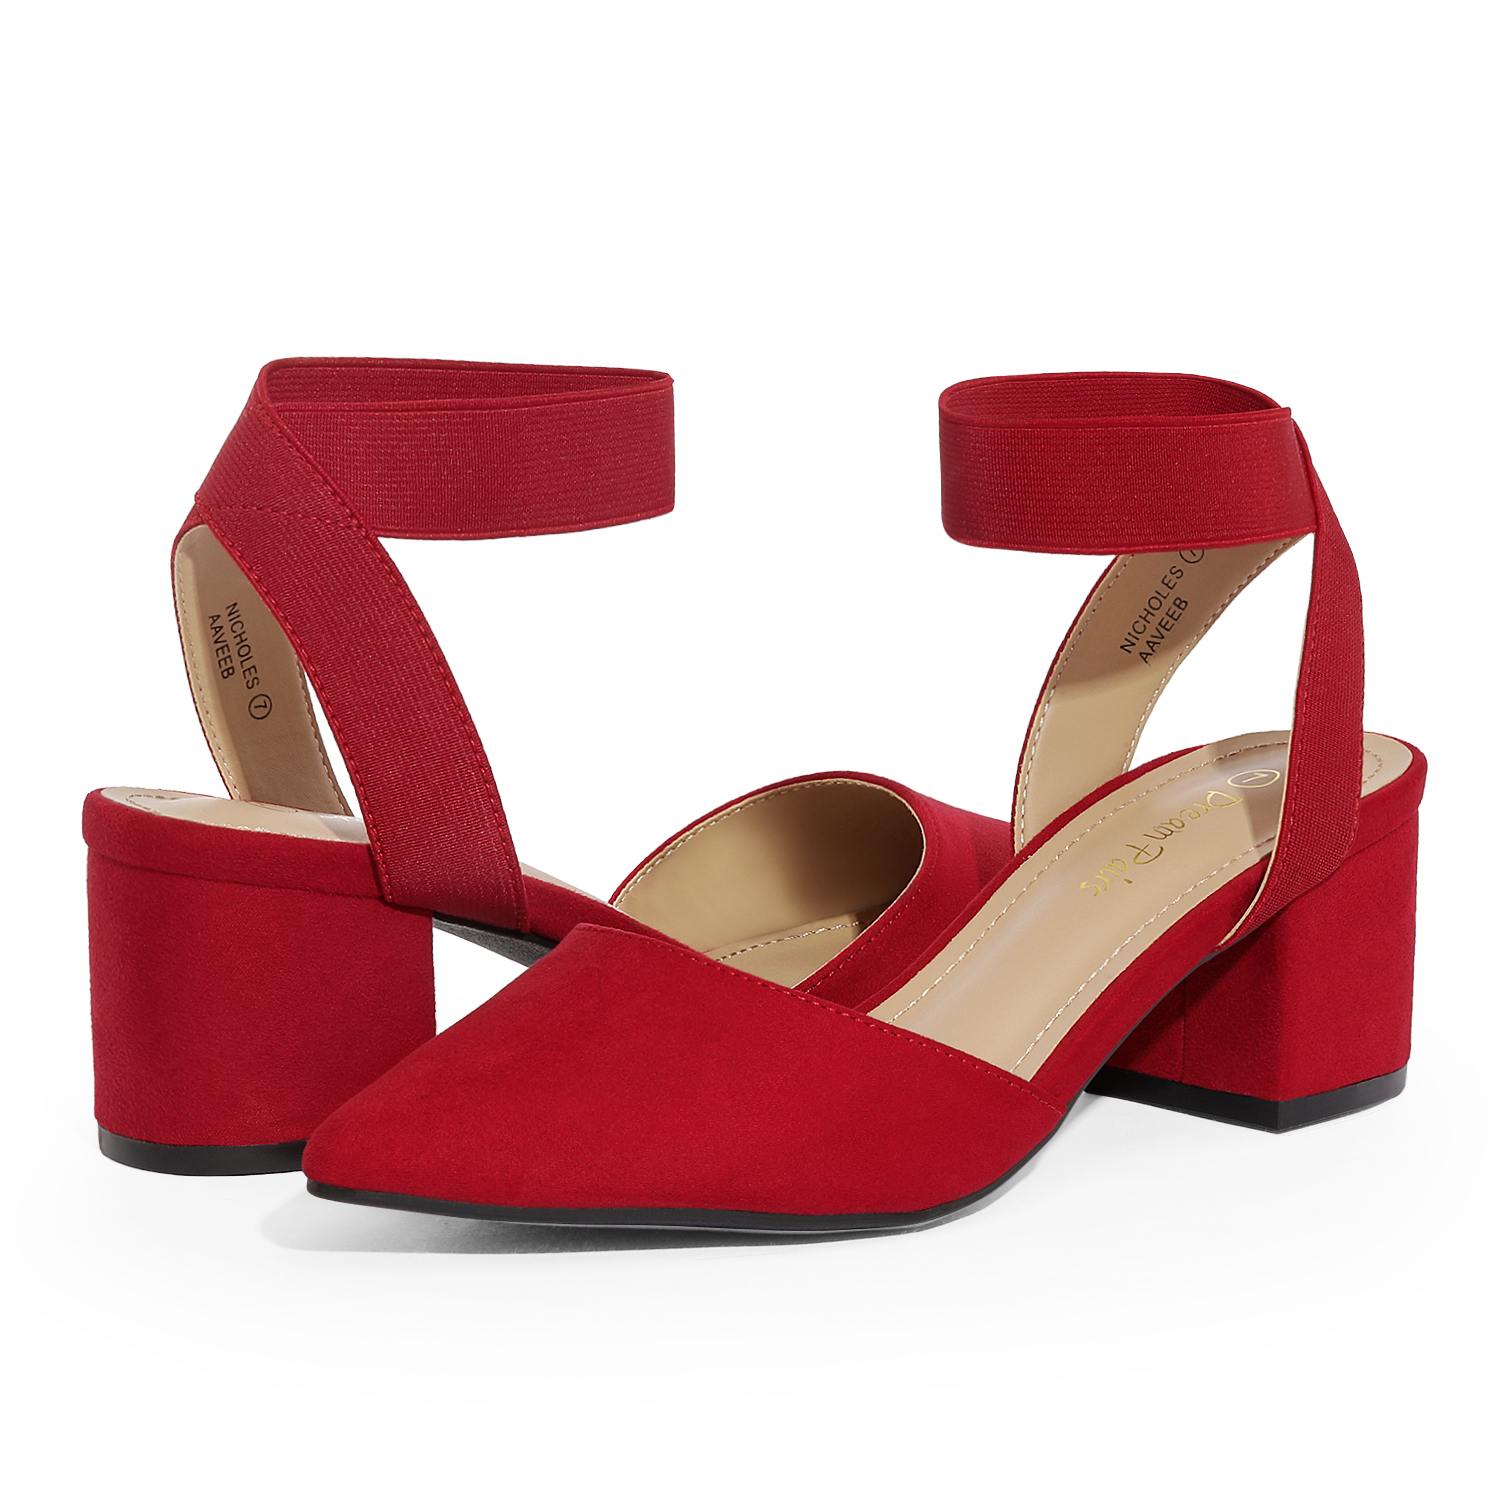 thumbnail 57 - Women-039-s-Elastic-Ankle-Strap-Pointed-Toe-Pump-Shoes-Low-Chunky-Heel-Dress-Pumps